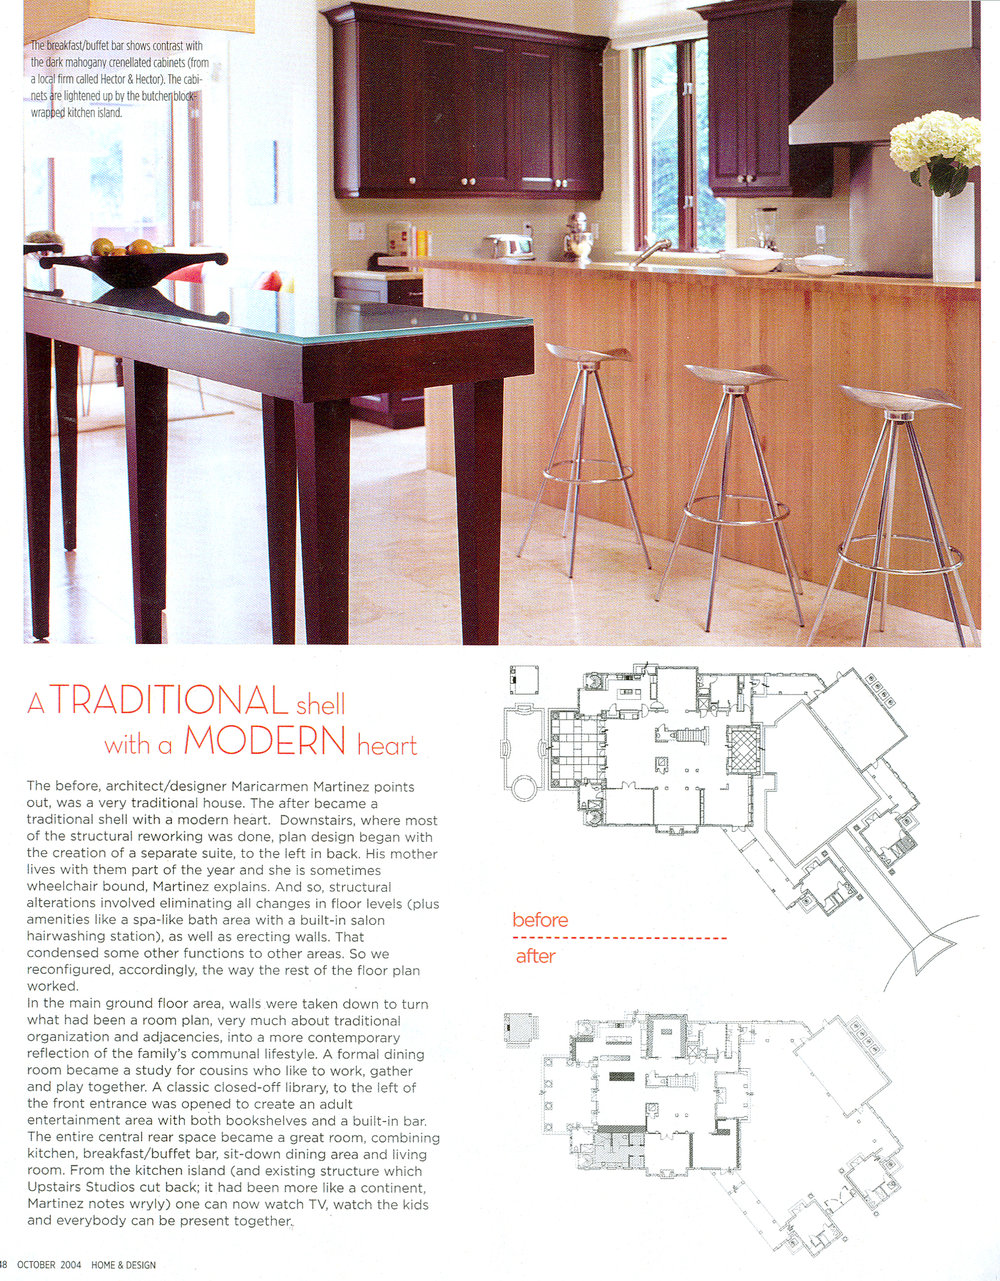 Home&Design October2004 article page 5.jpg